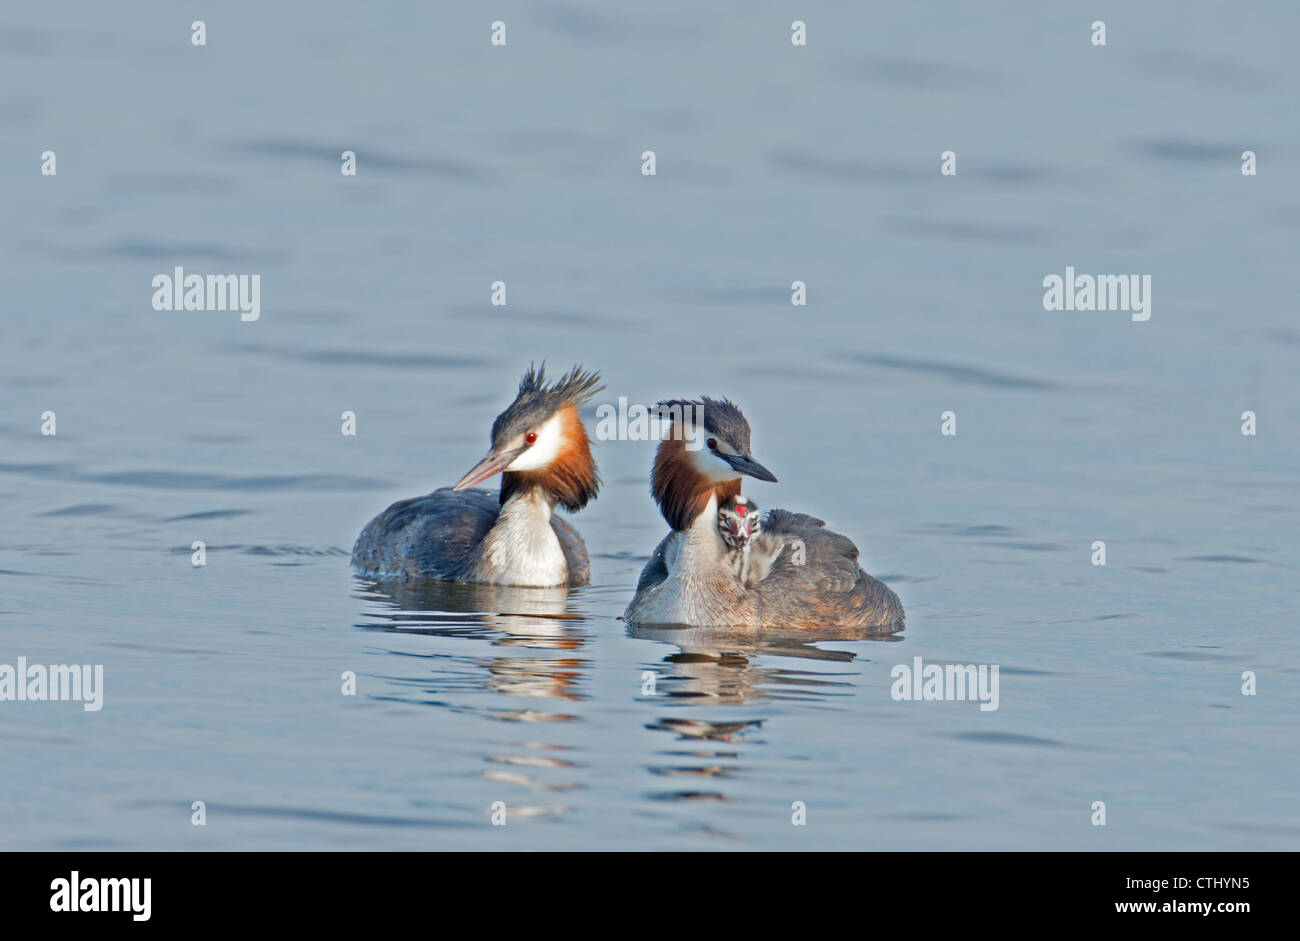 PAIR OF GREAT CRESTED GREBES Podiceps cristatus WITH CHICK - Stock Image